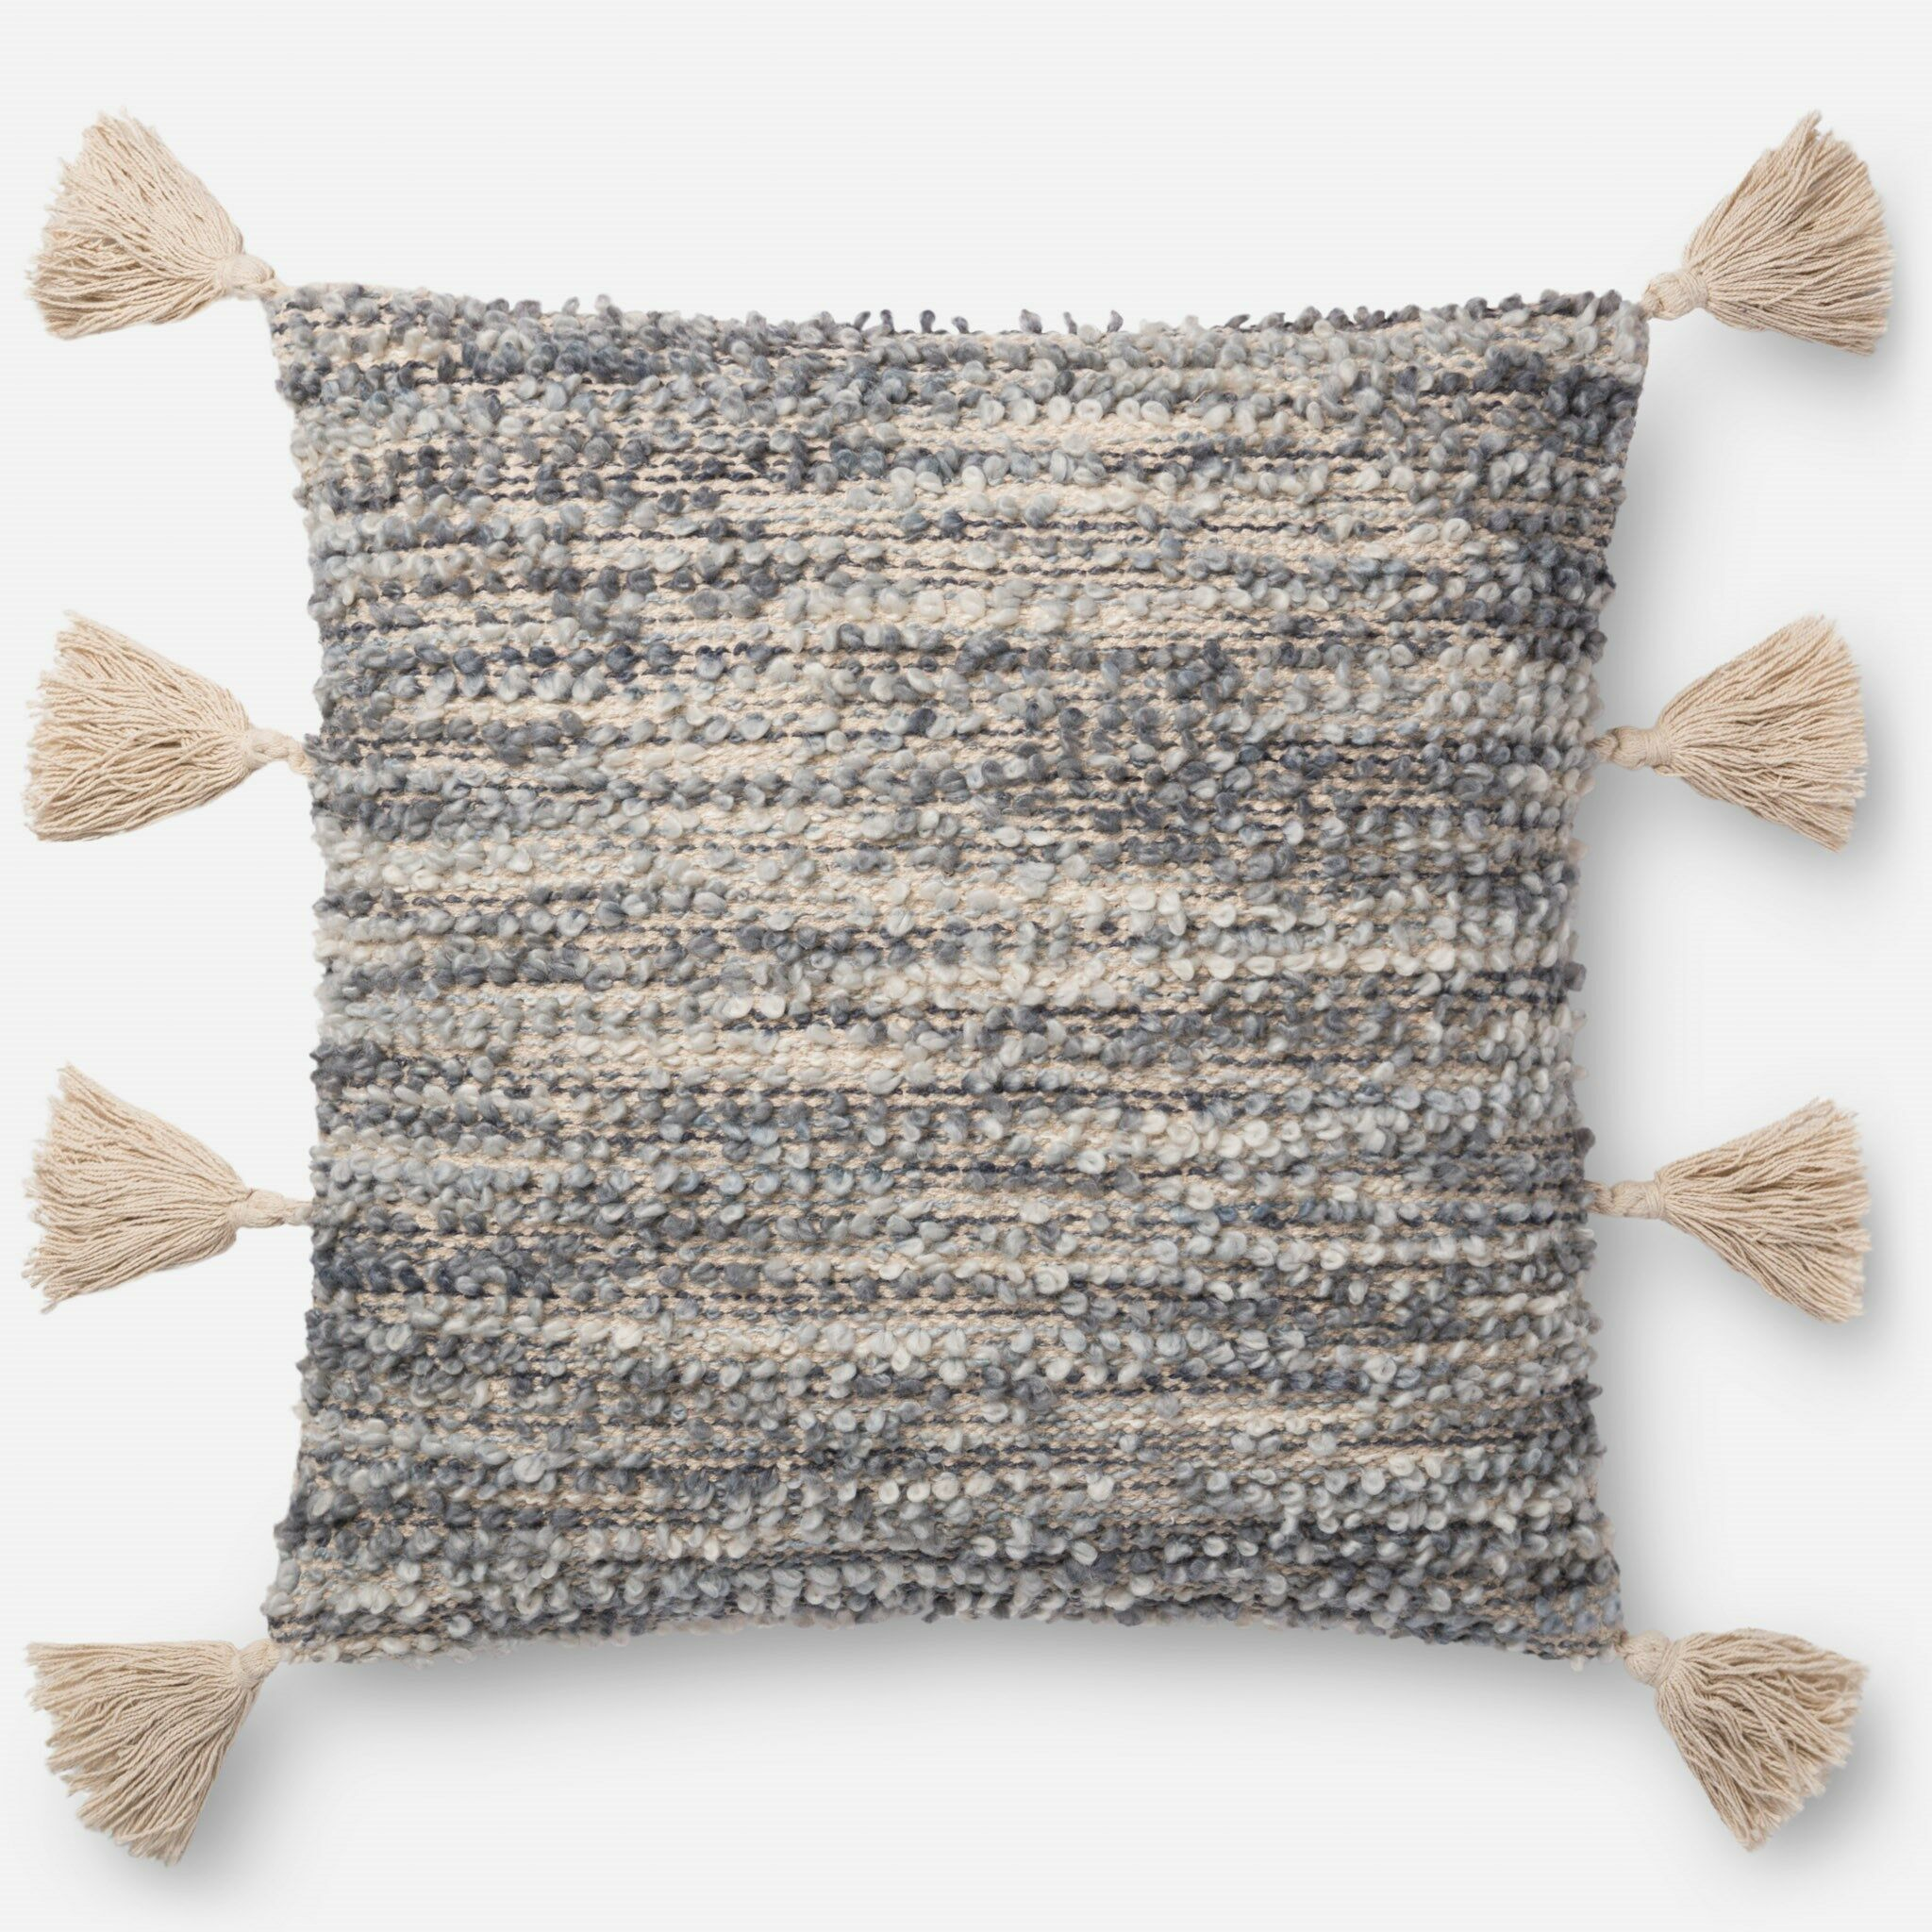 Stone Pillow Fill Material: Down/Feather, Color: Gray